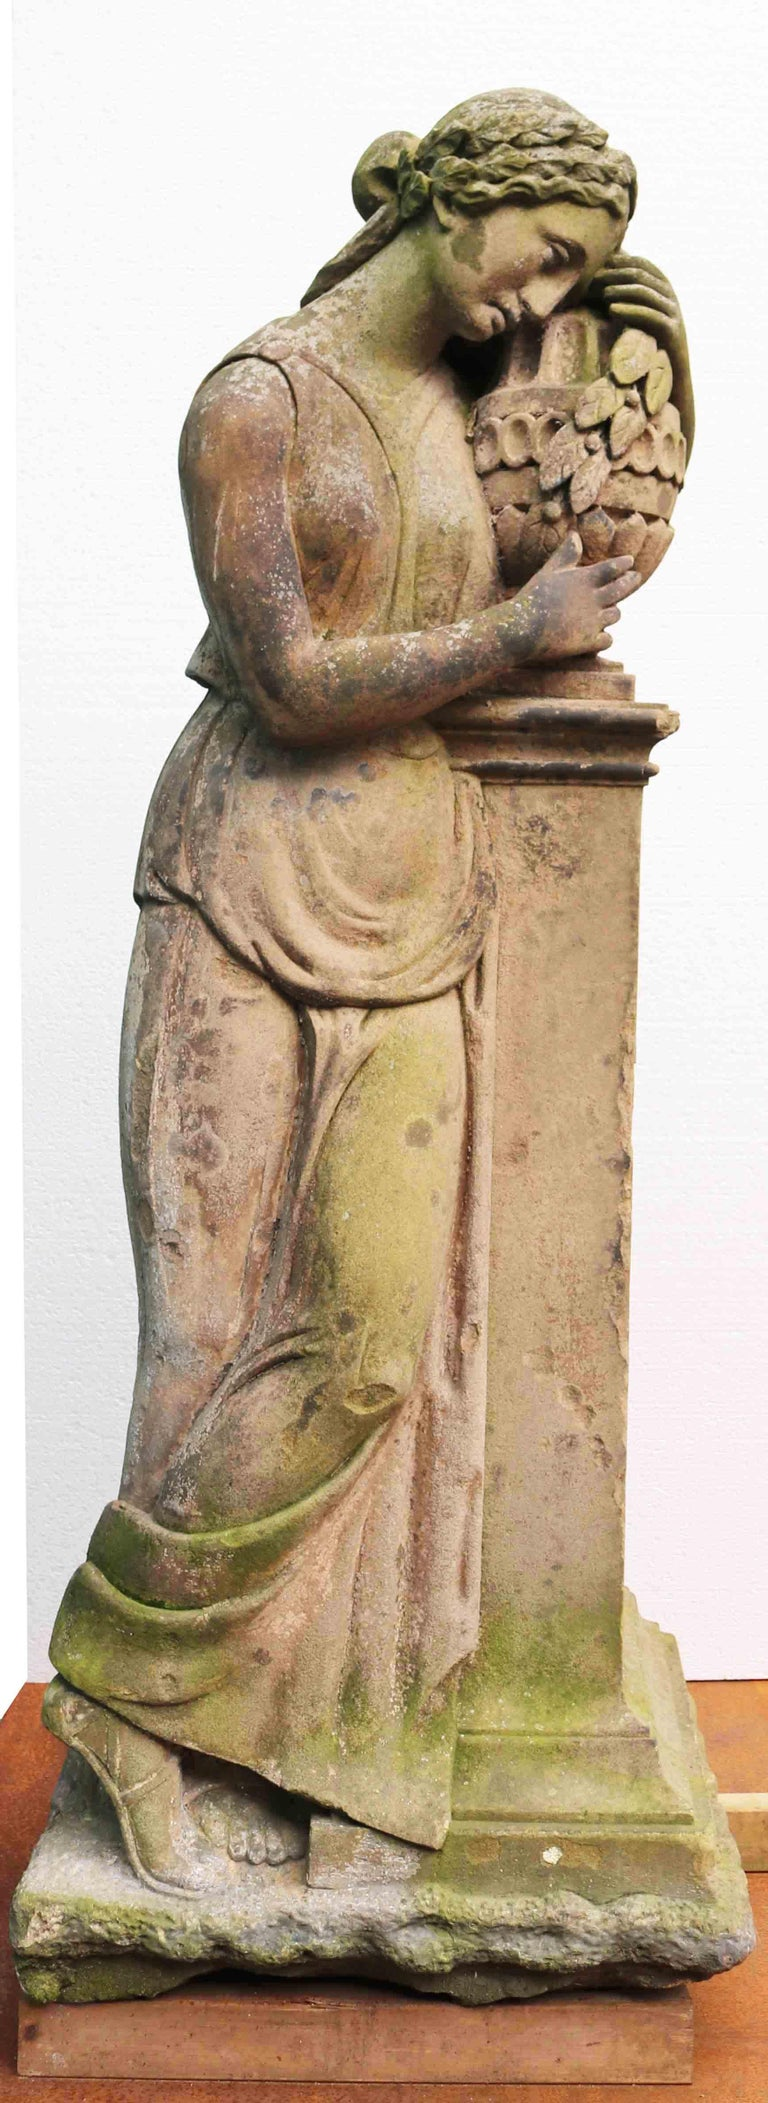 Life-Size Antique Classical Stone Statue In Fair Condition For Sale In Wormelow, Herefordshire